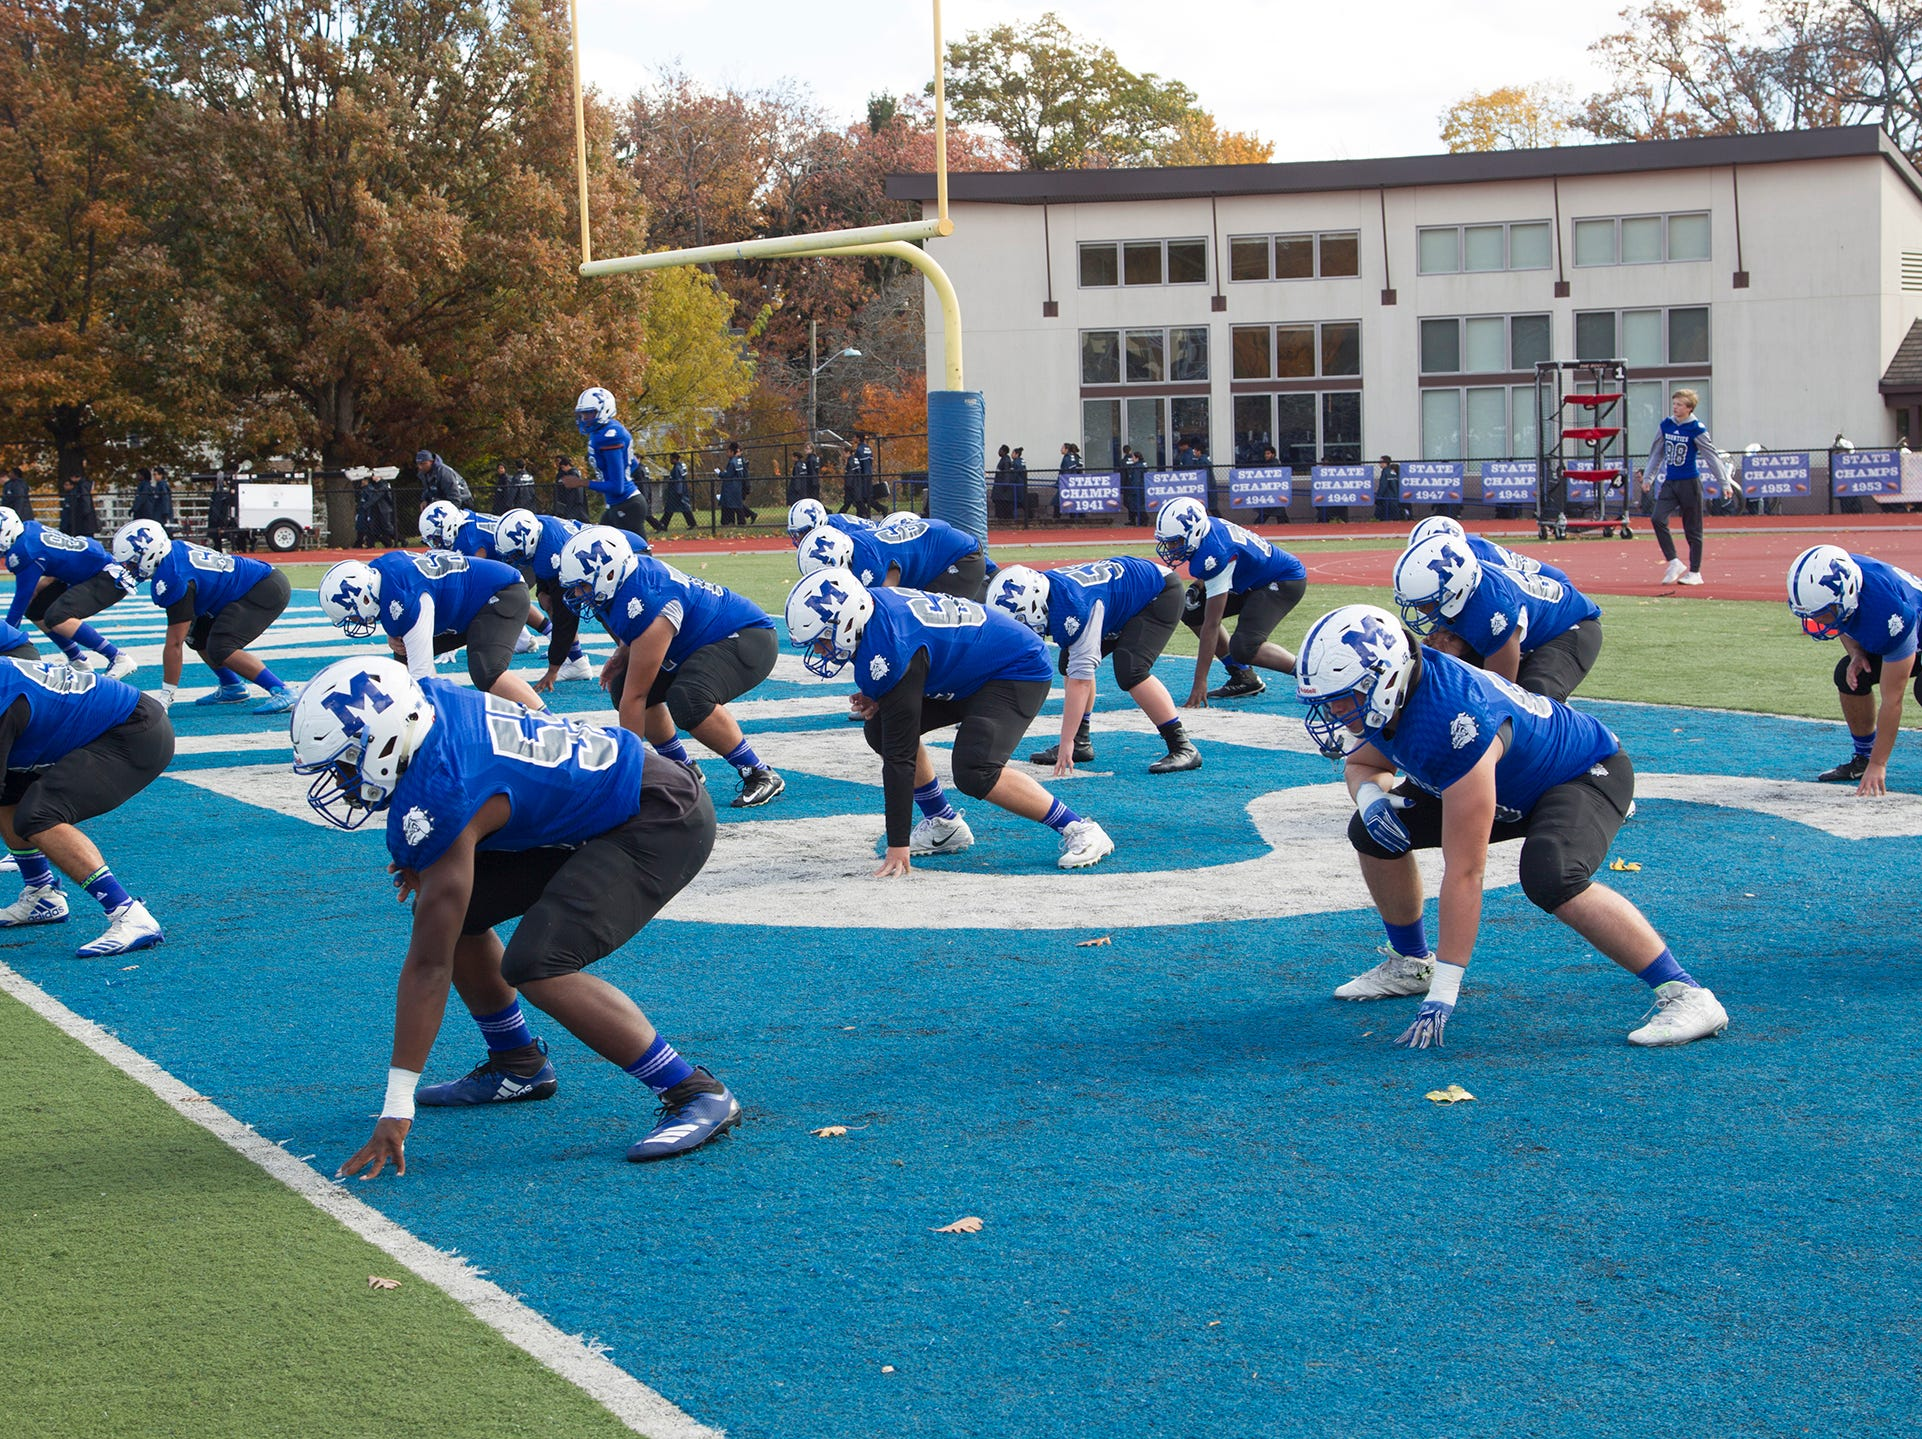 Montclair high School football game at Monclair. 10/03/2018